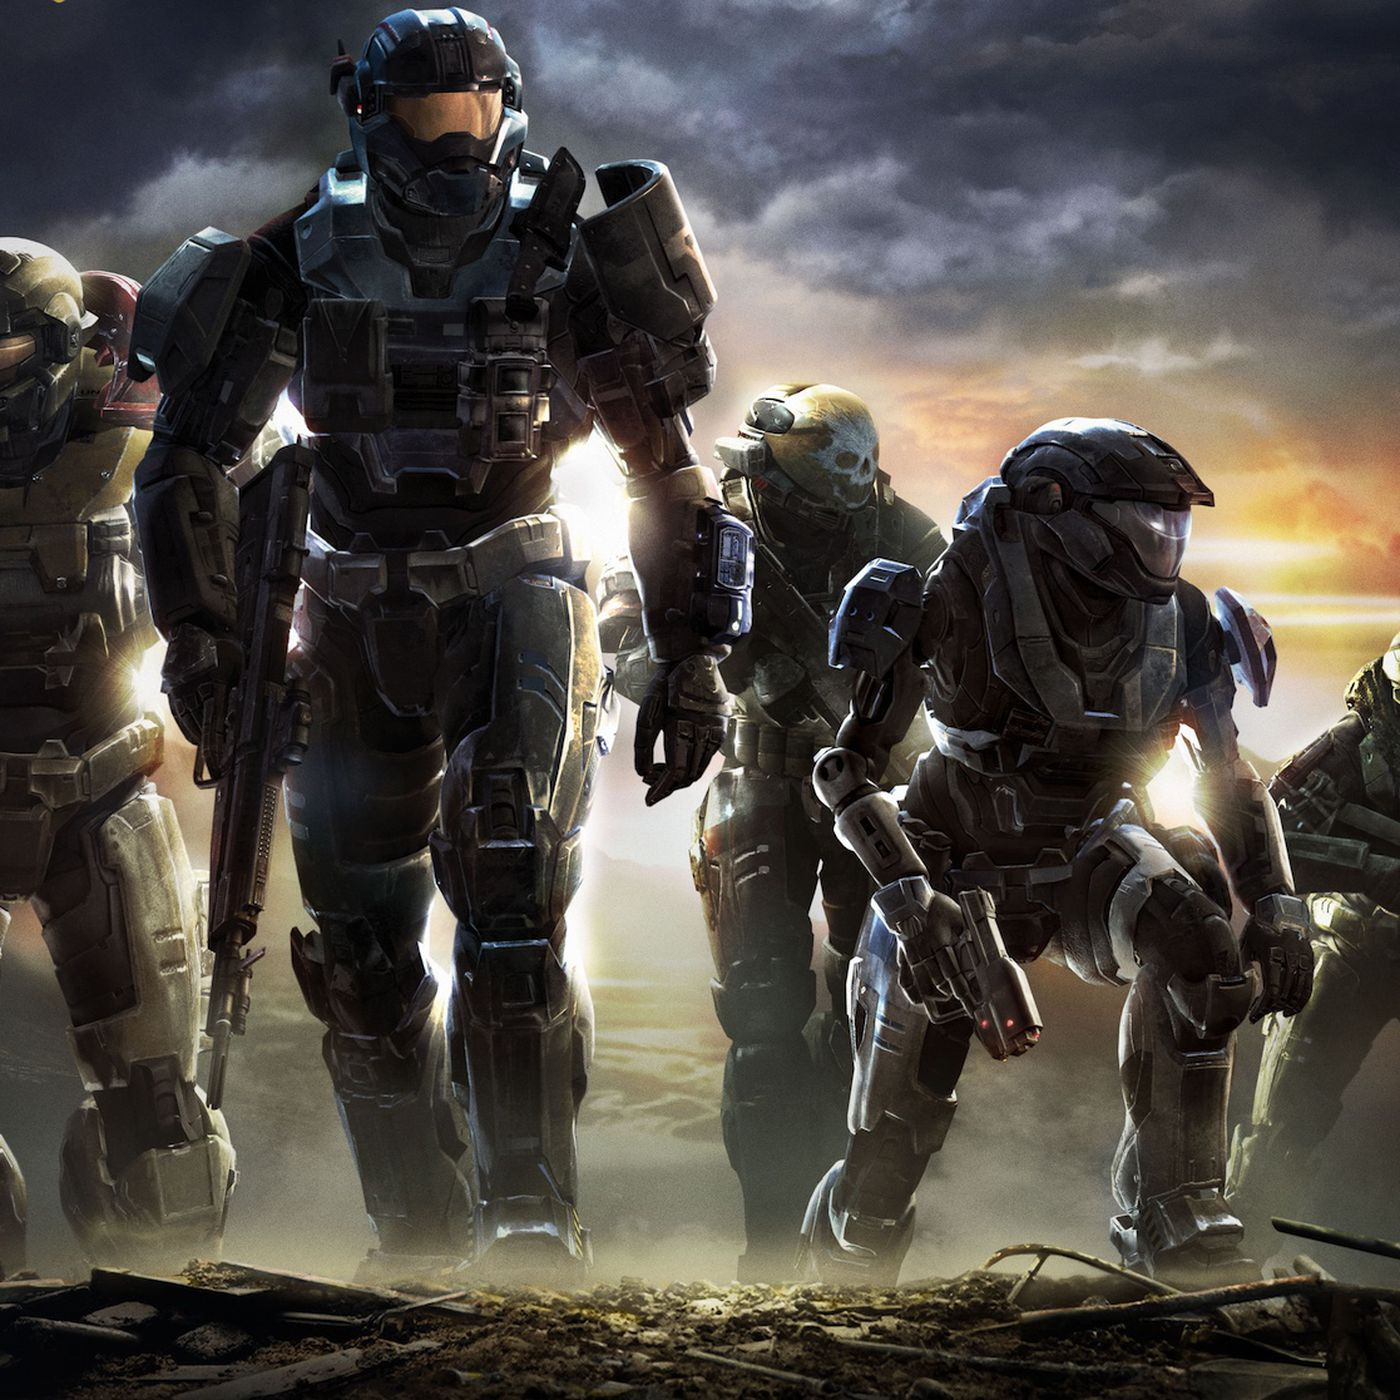 How To Turn Off Halo Reach Anti Cheat On Pc For Modding